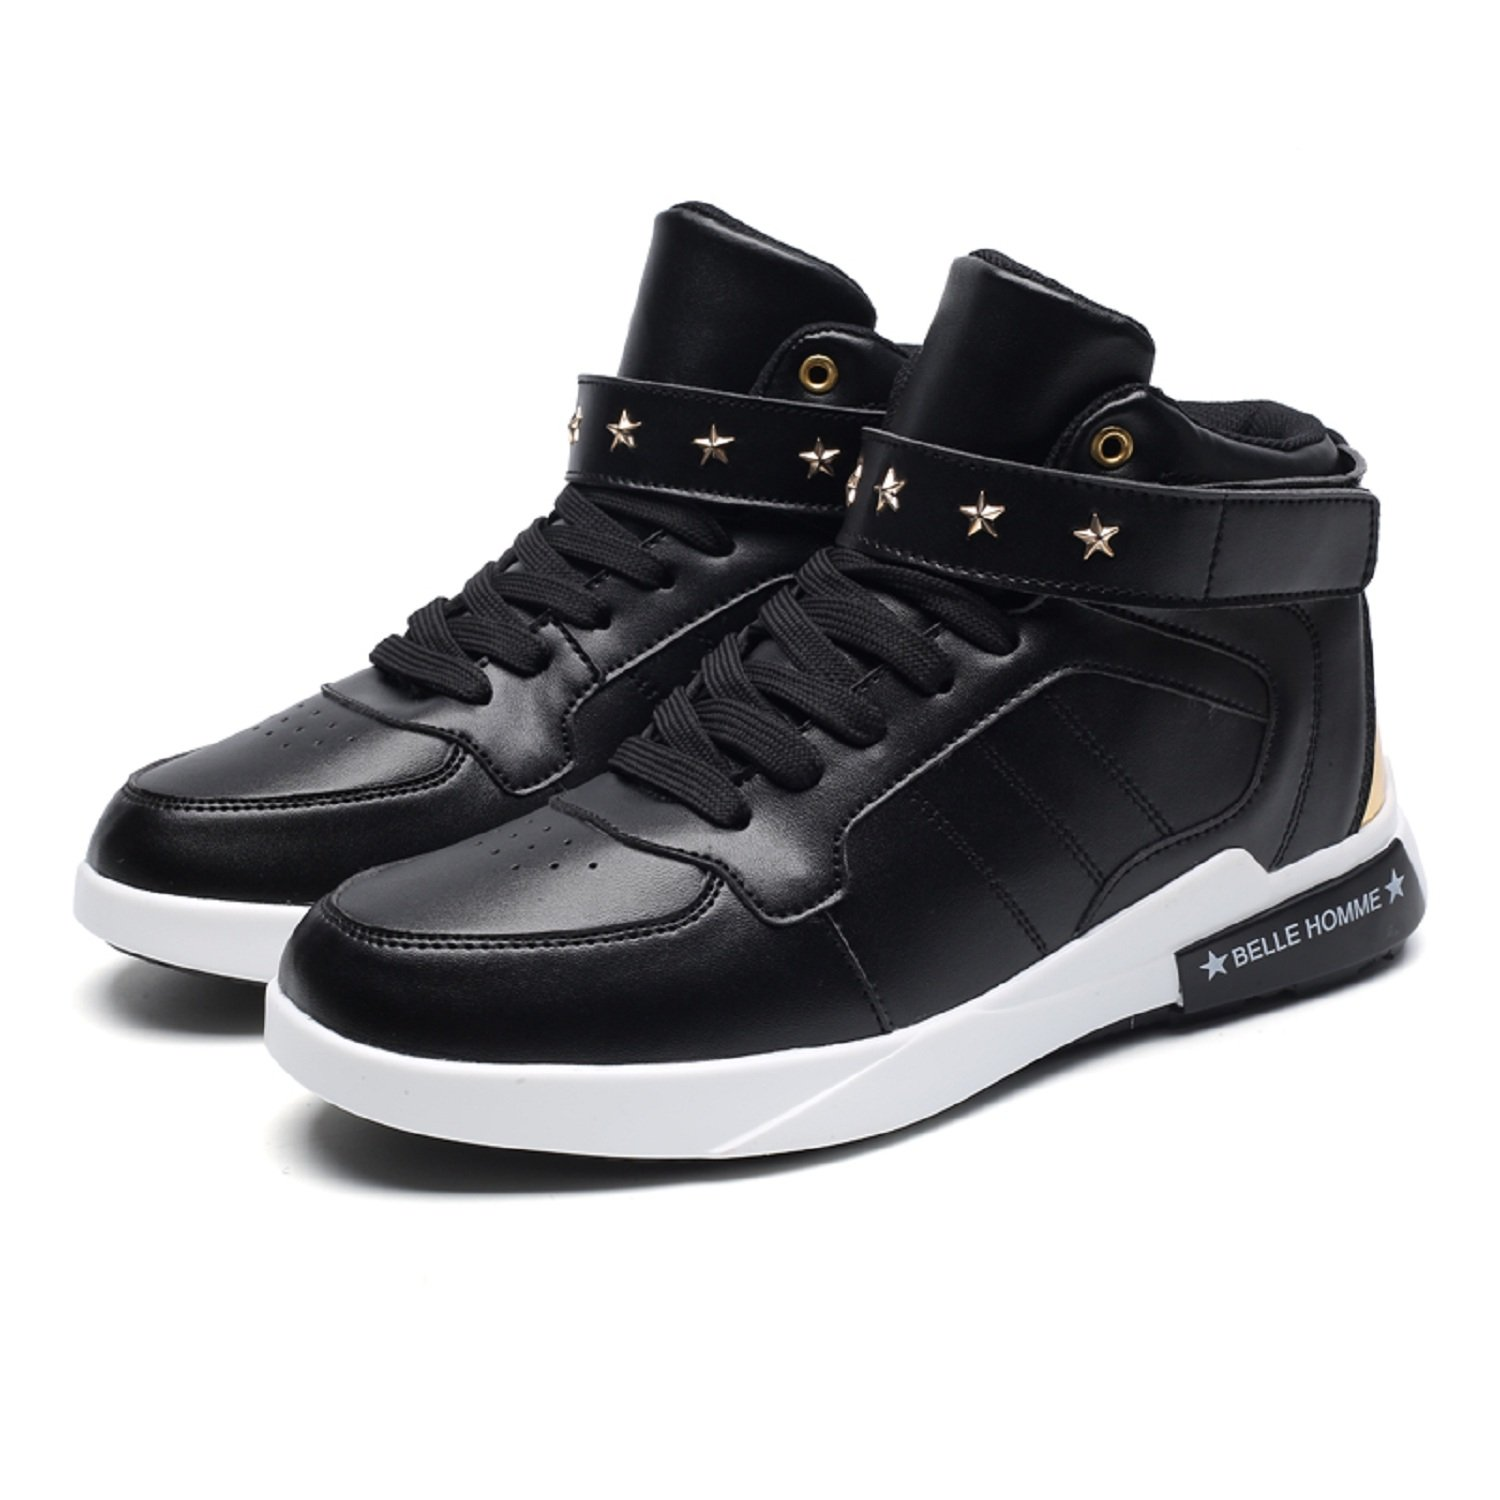 945610c718bc tqgold Mens Casual High-Top Trainers Sneakers Leather Waterproof Velcro  Lace up Shoes  Amazon.co.uk  Shoes   Bags